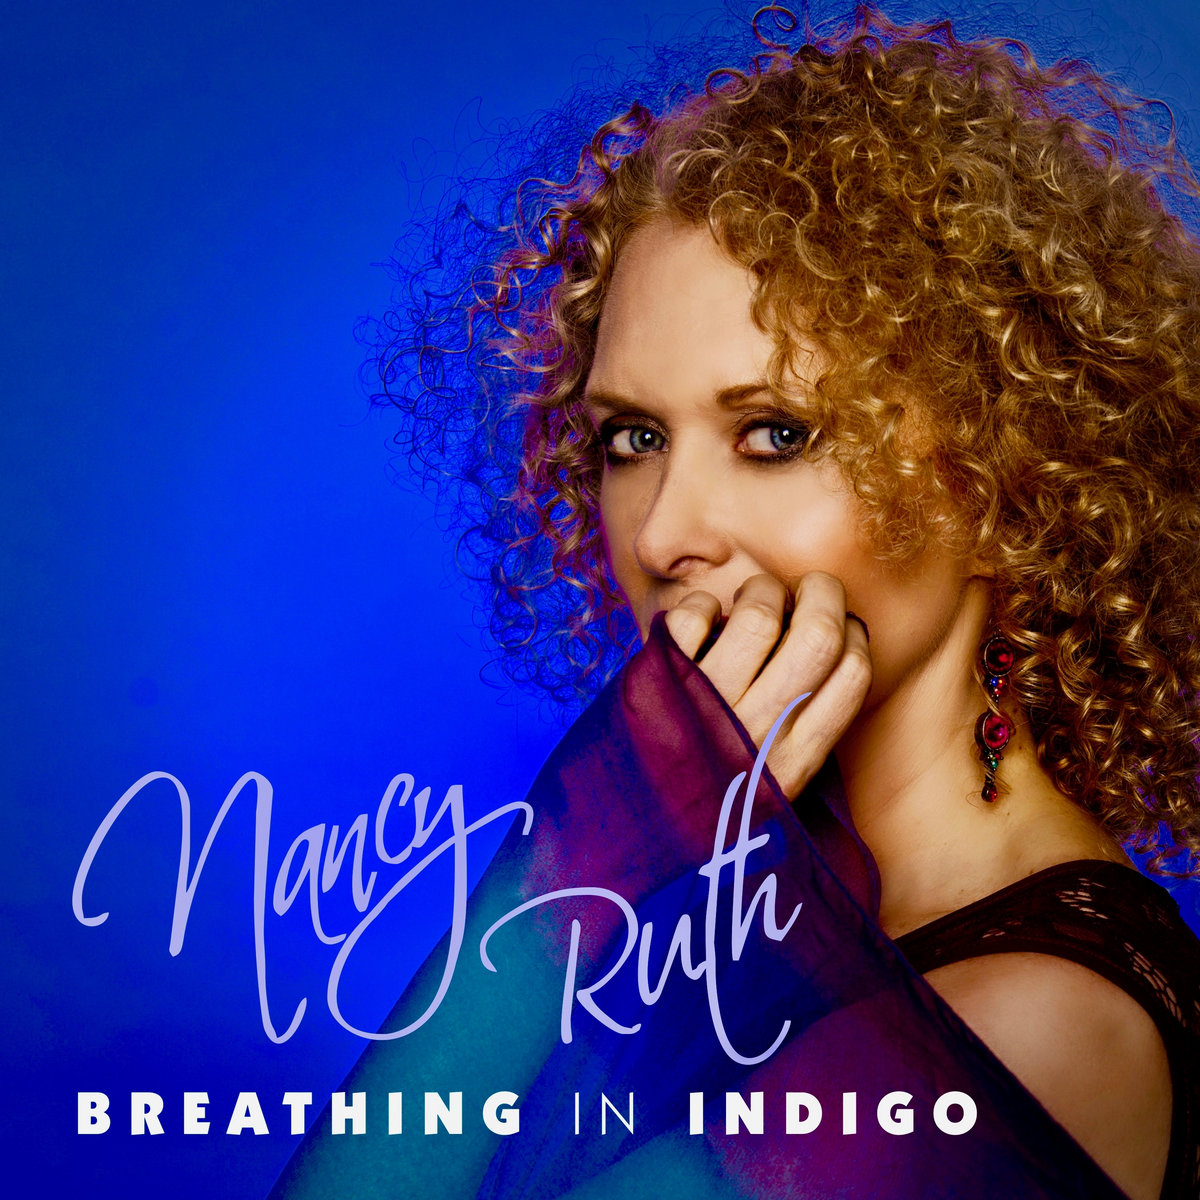 Breathing In Indigo by Nancy Ruth